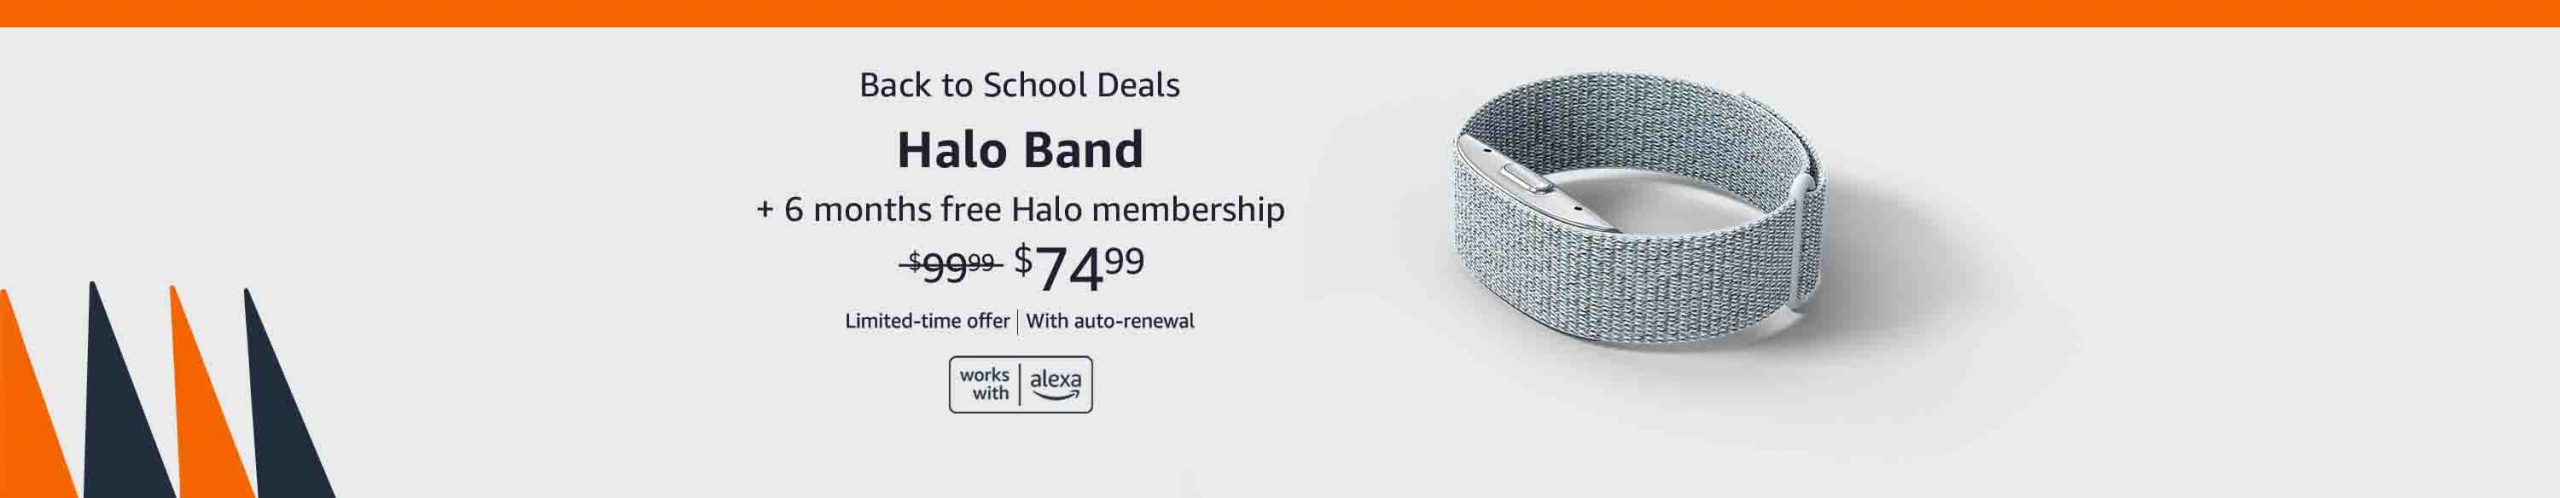 Halo Band deal